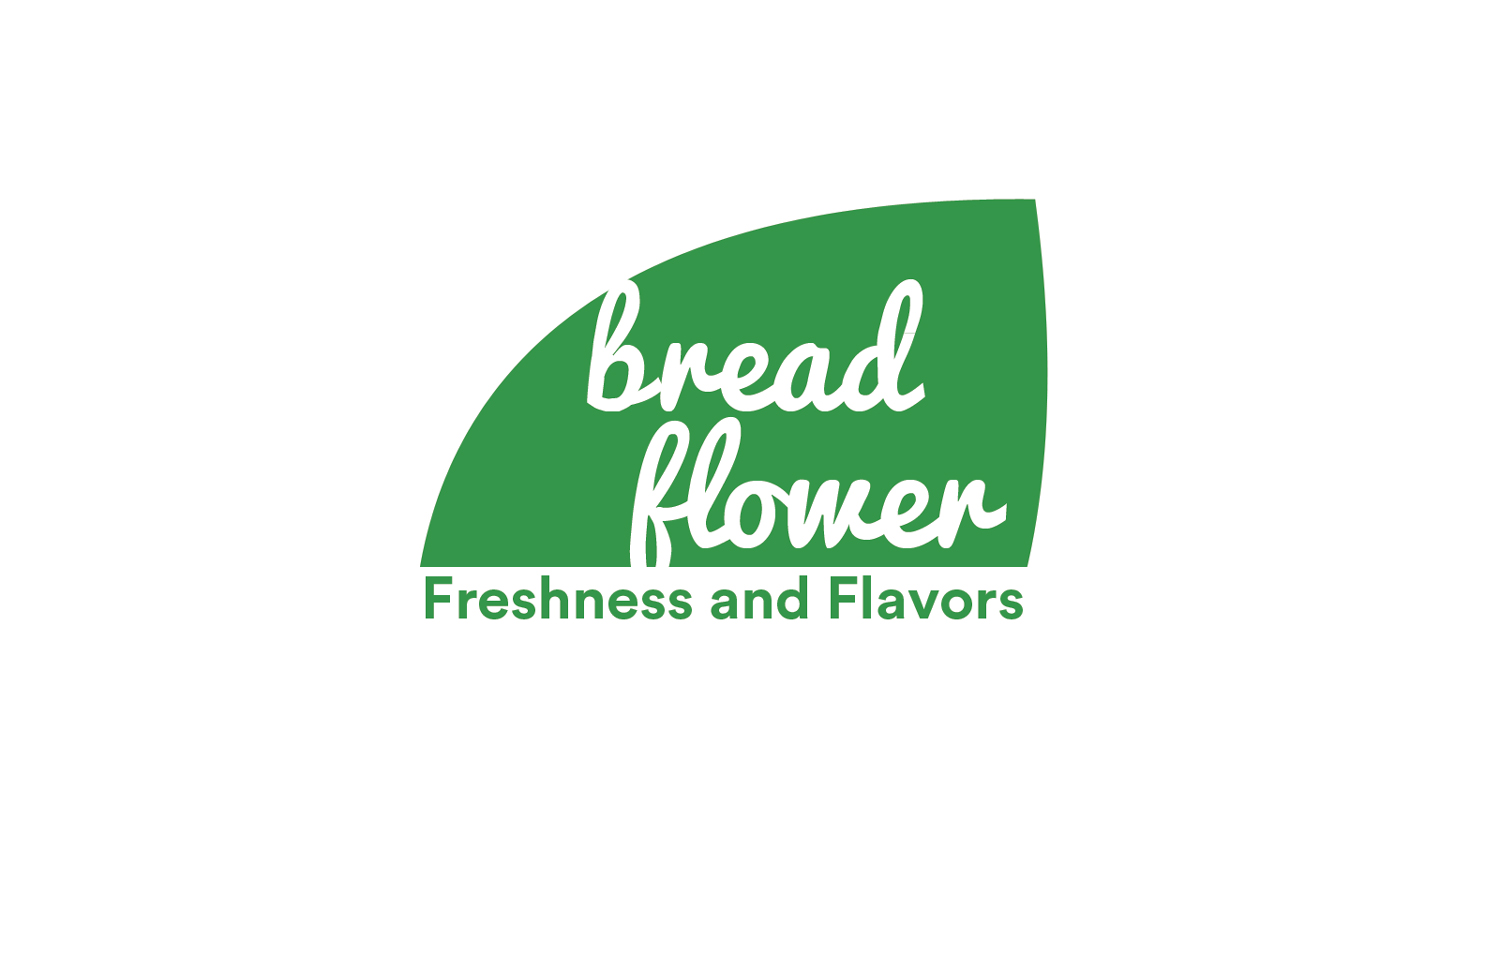 patisserie logo design for bread flower freshness and flavors by